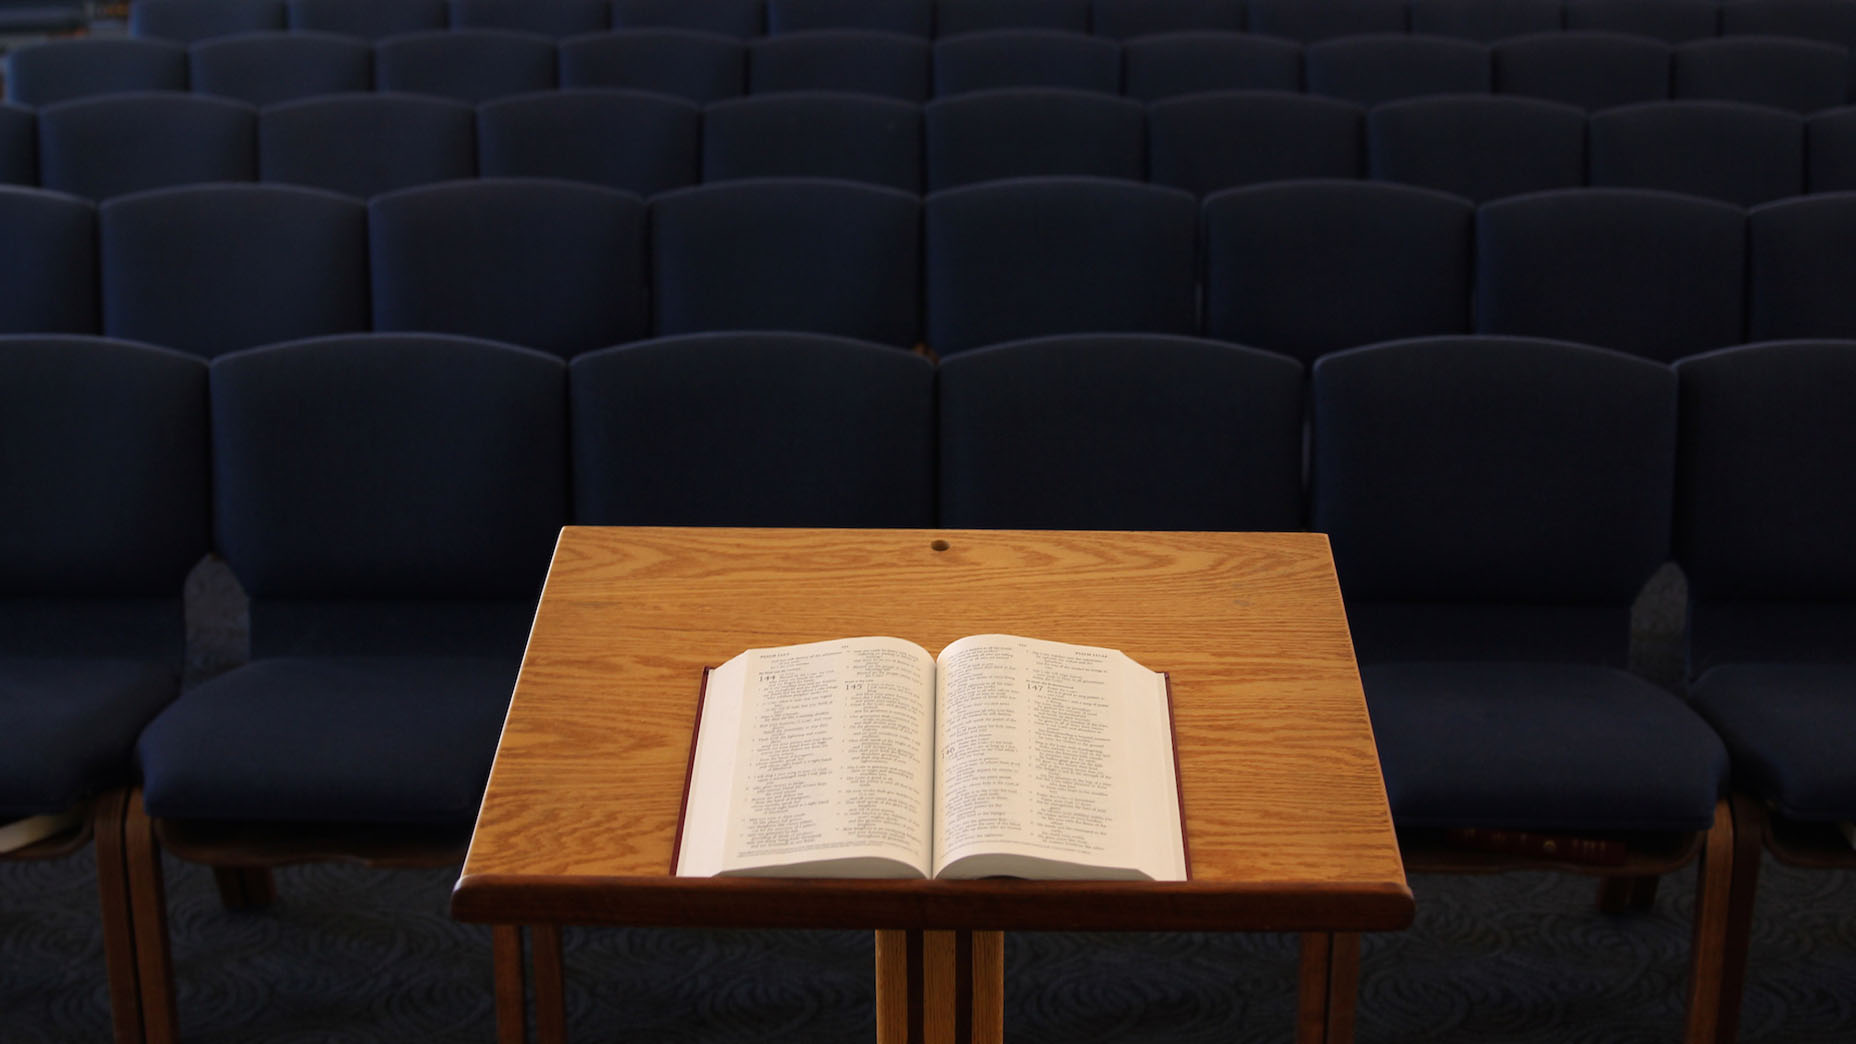 Judgement, Potential and Listening to Sermons